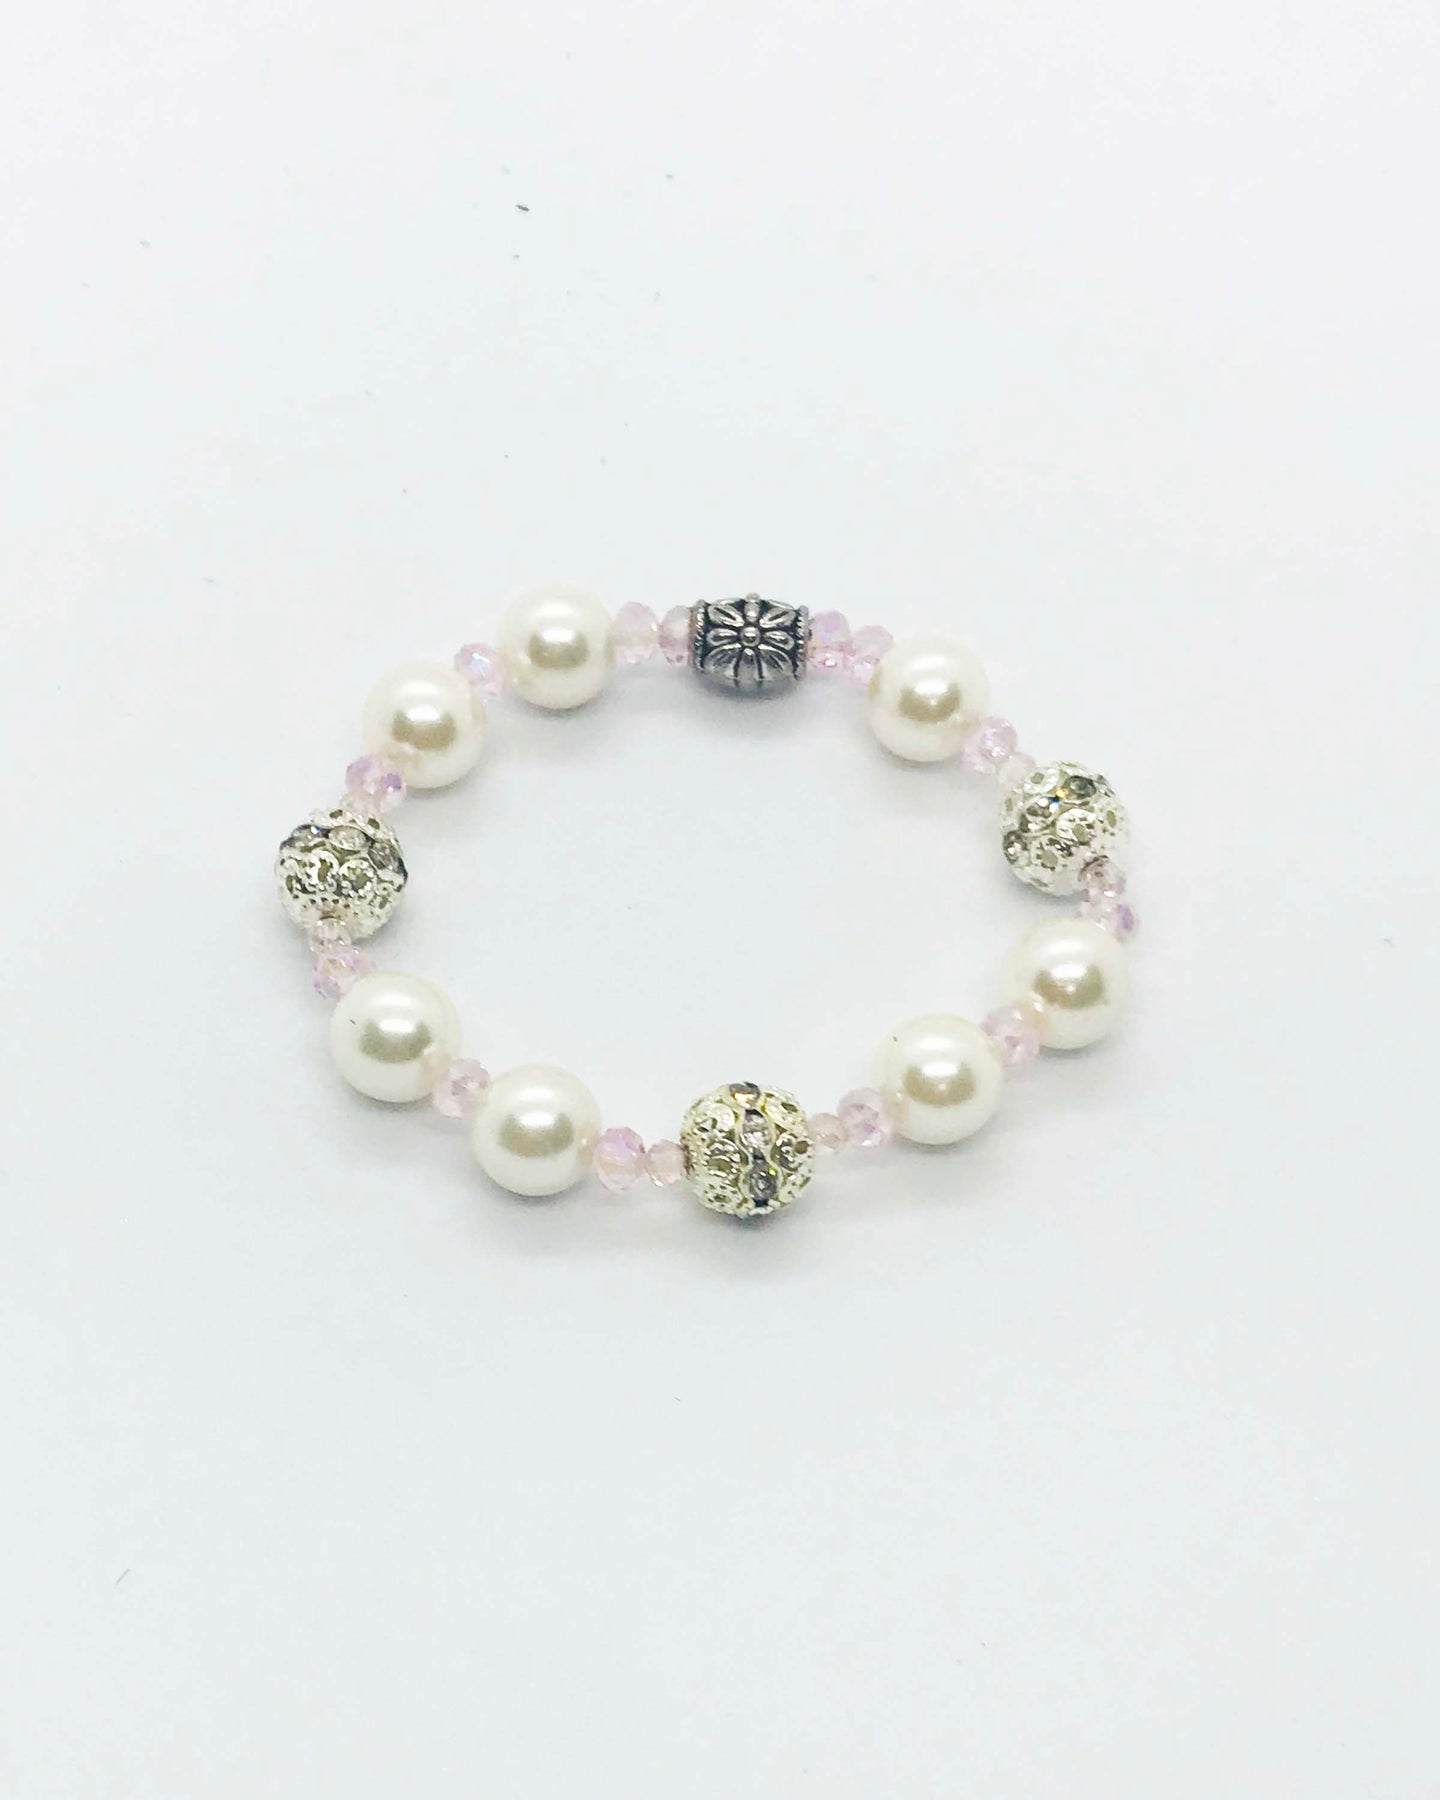 Glass Bead Stretchy Bracelet - B1006